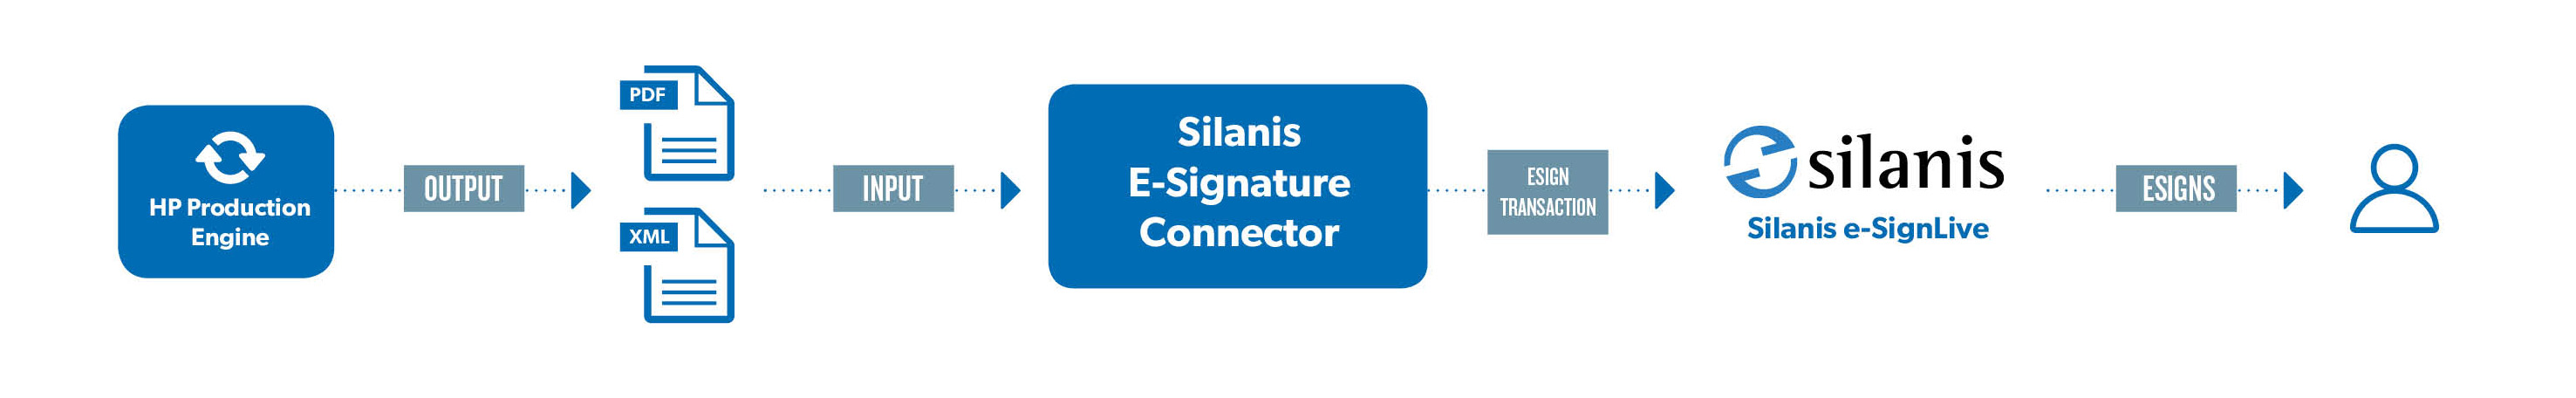 Connecting in an Exstream Way with E-Signatures